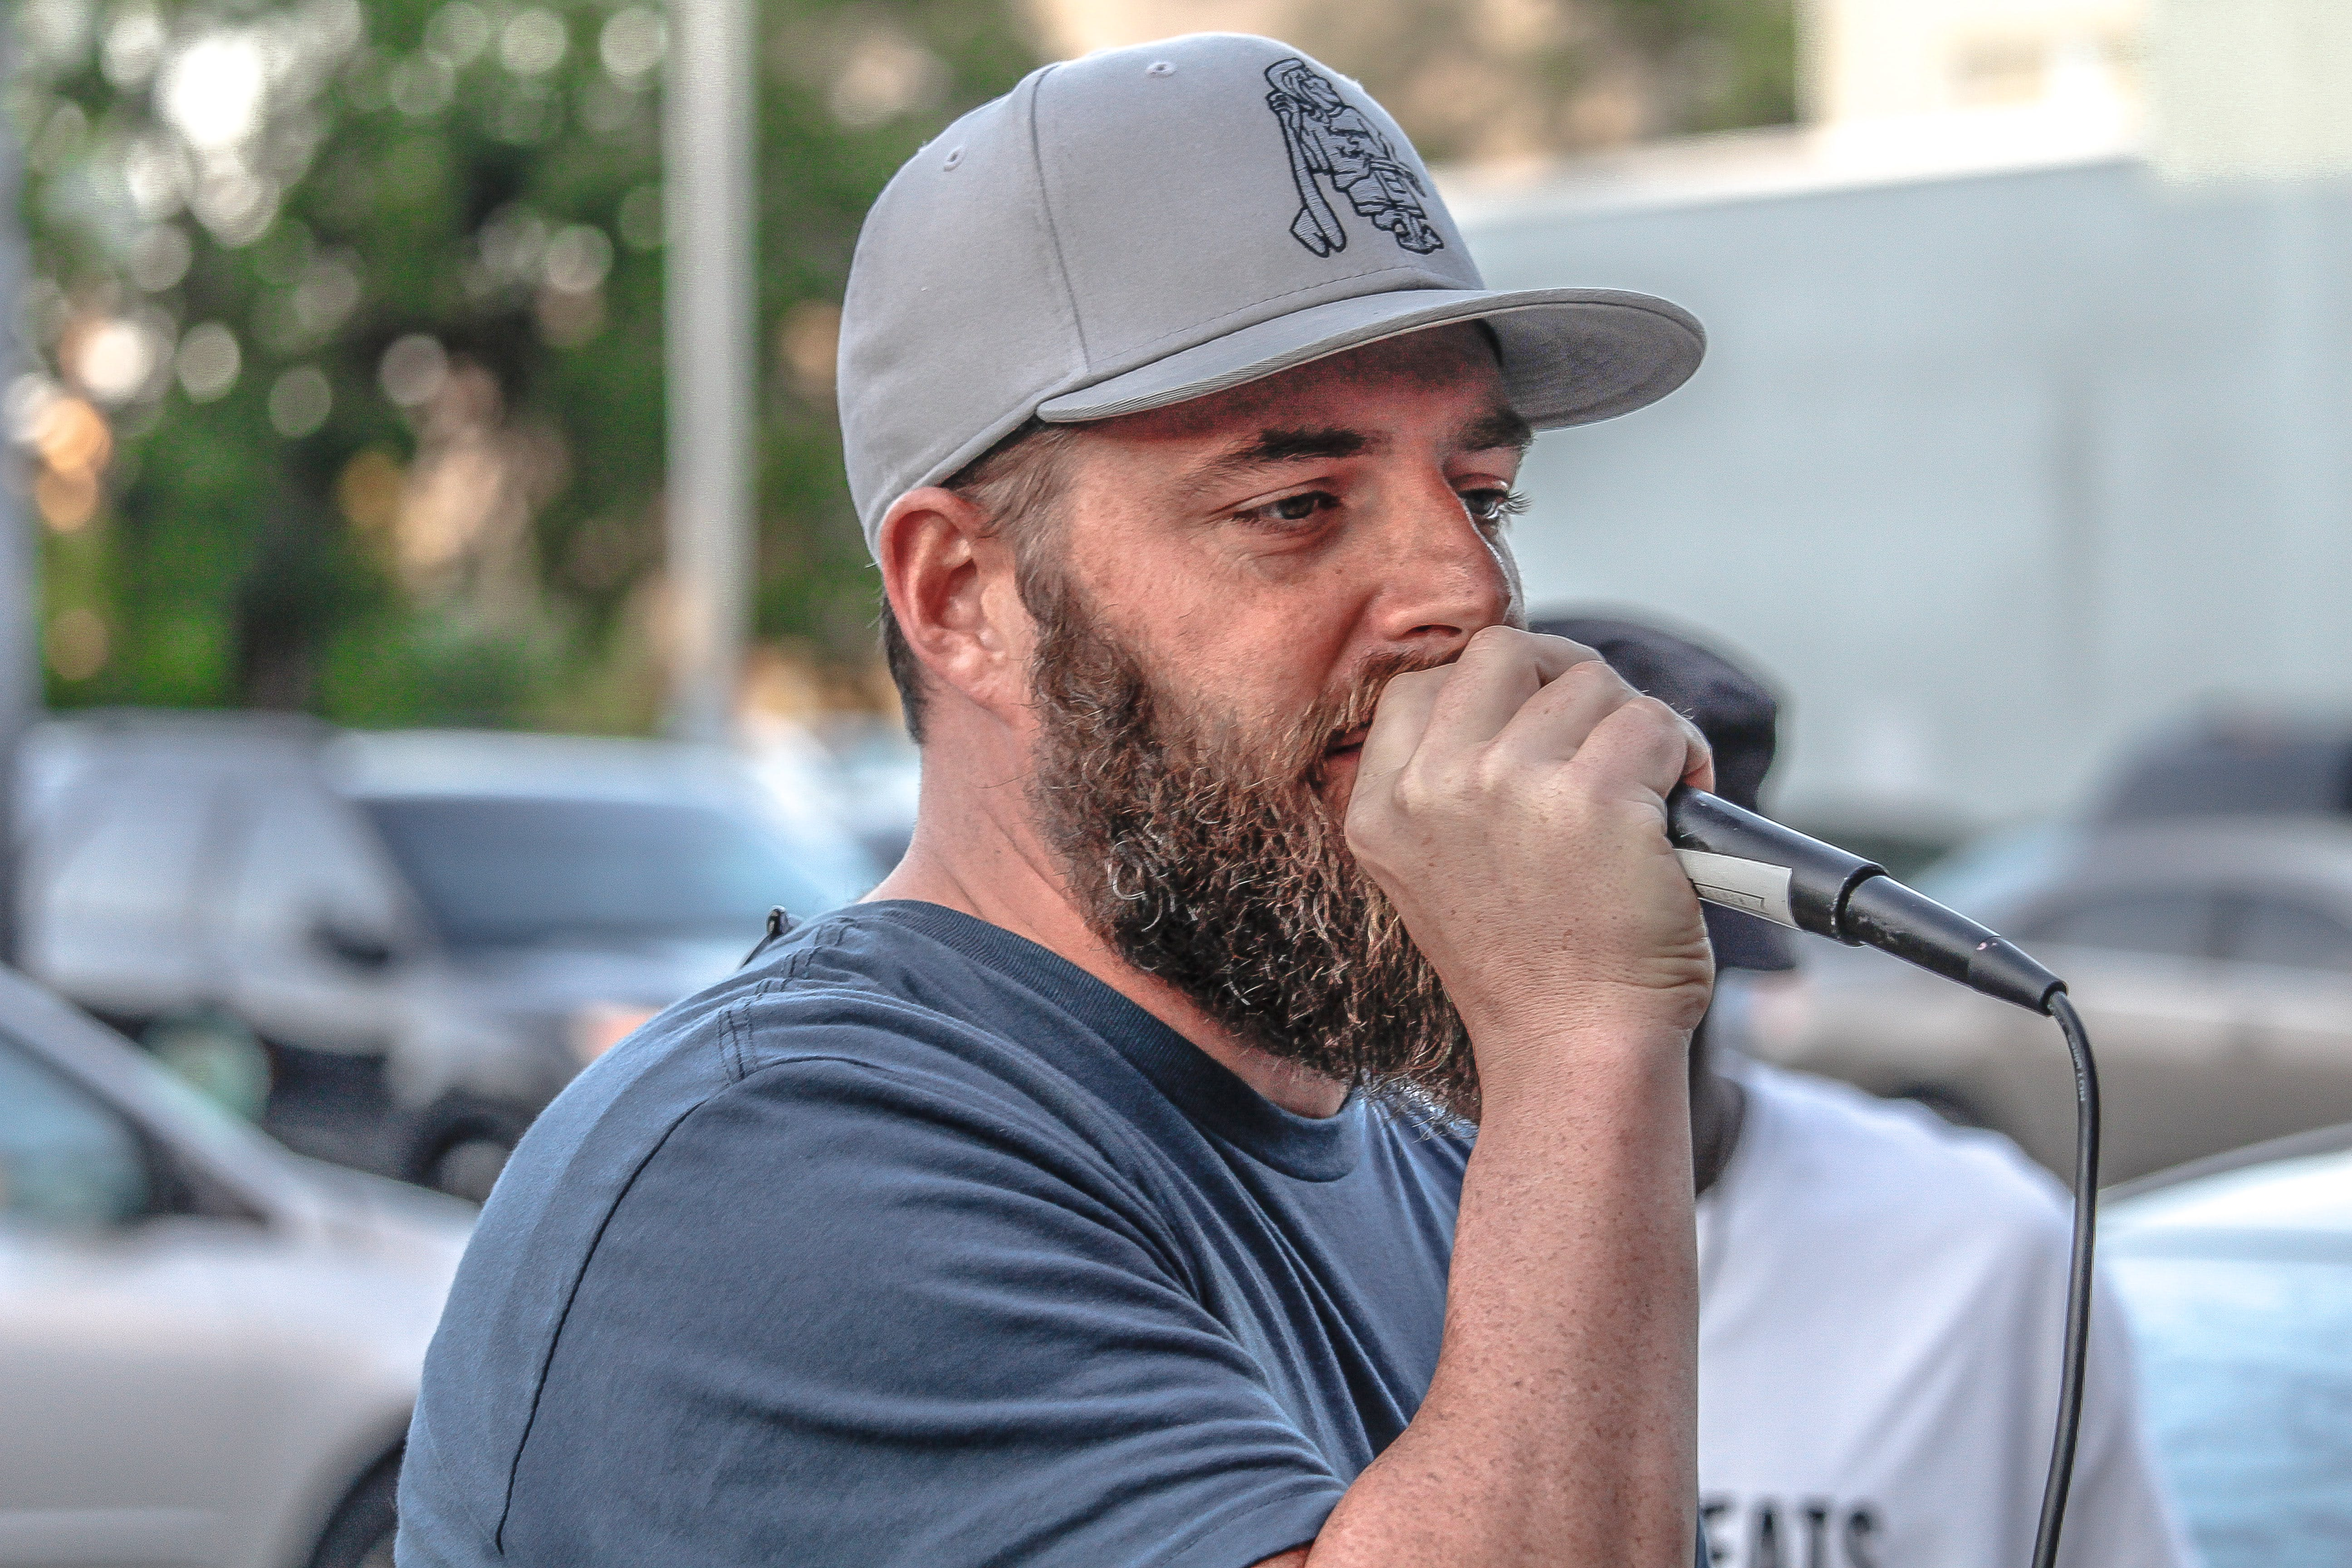 Man In Crew-neck Shirt And Grey Cap Holding Black Corded Microphone